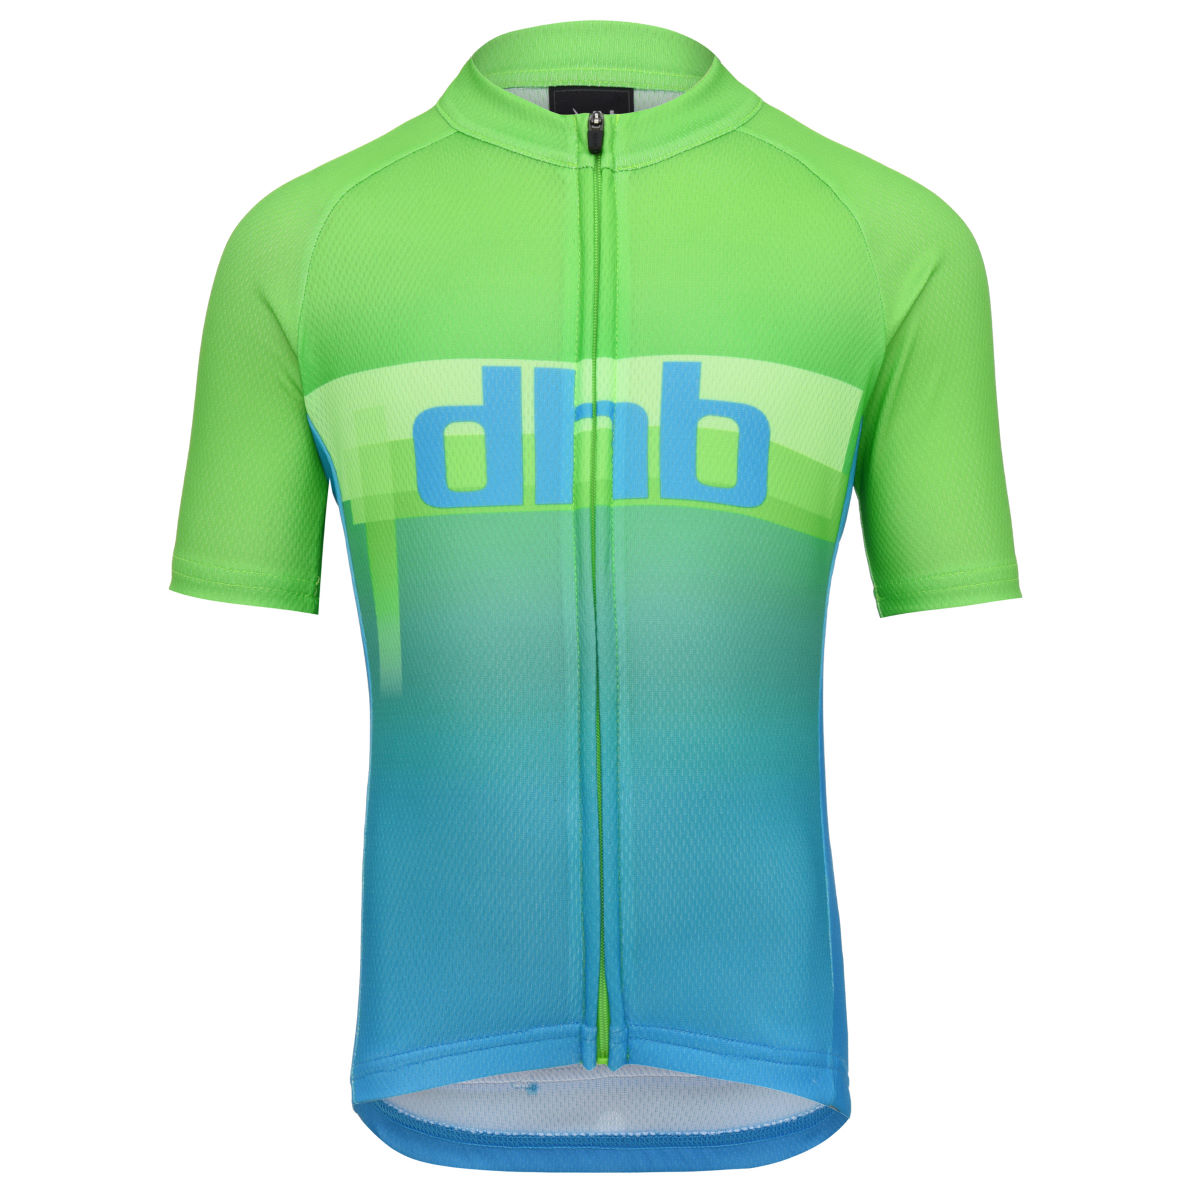 Maillot Enfant dhb Blur (manches courtes) - 8-10 Years Green/Blue